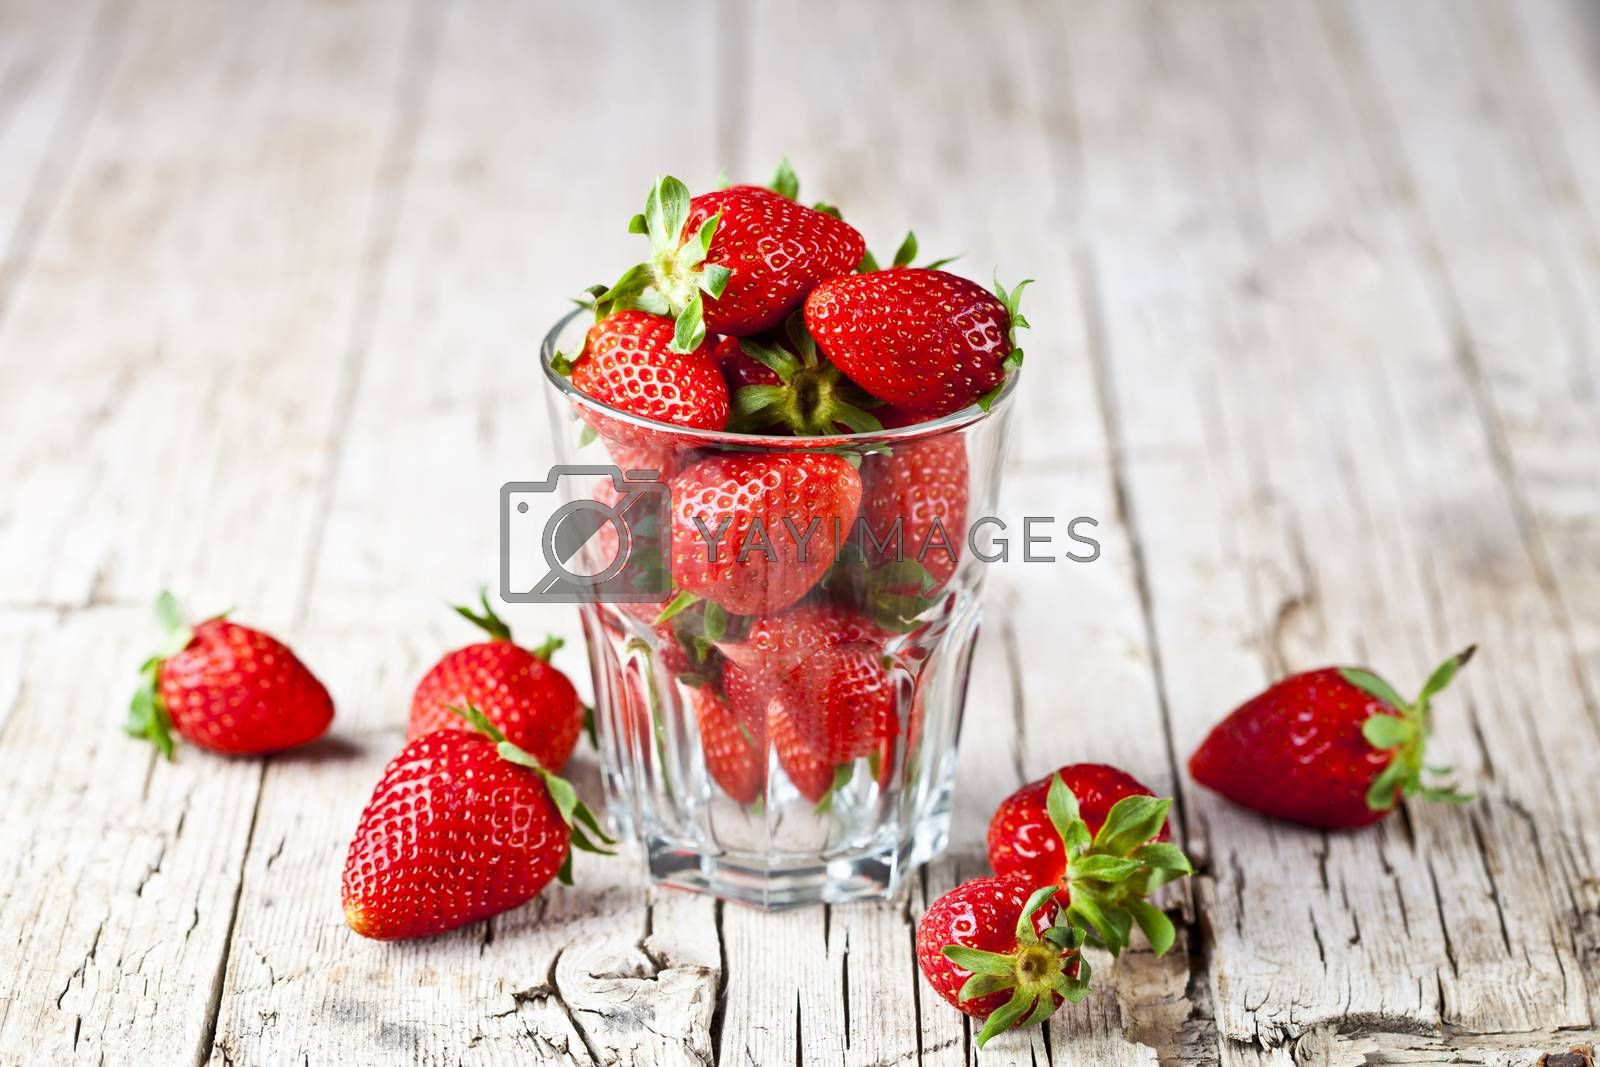 Organic red strawberries in glass on rustic wooden background. Healthy sweet food, vitamins and fruity concept.